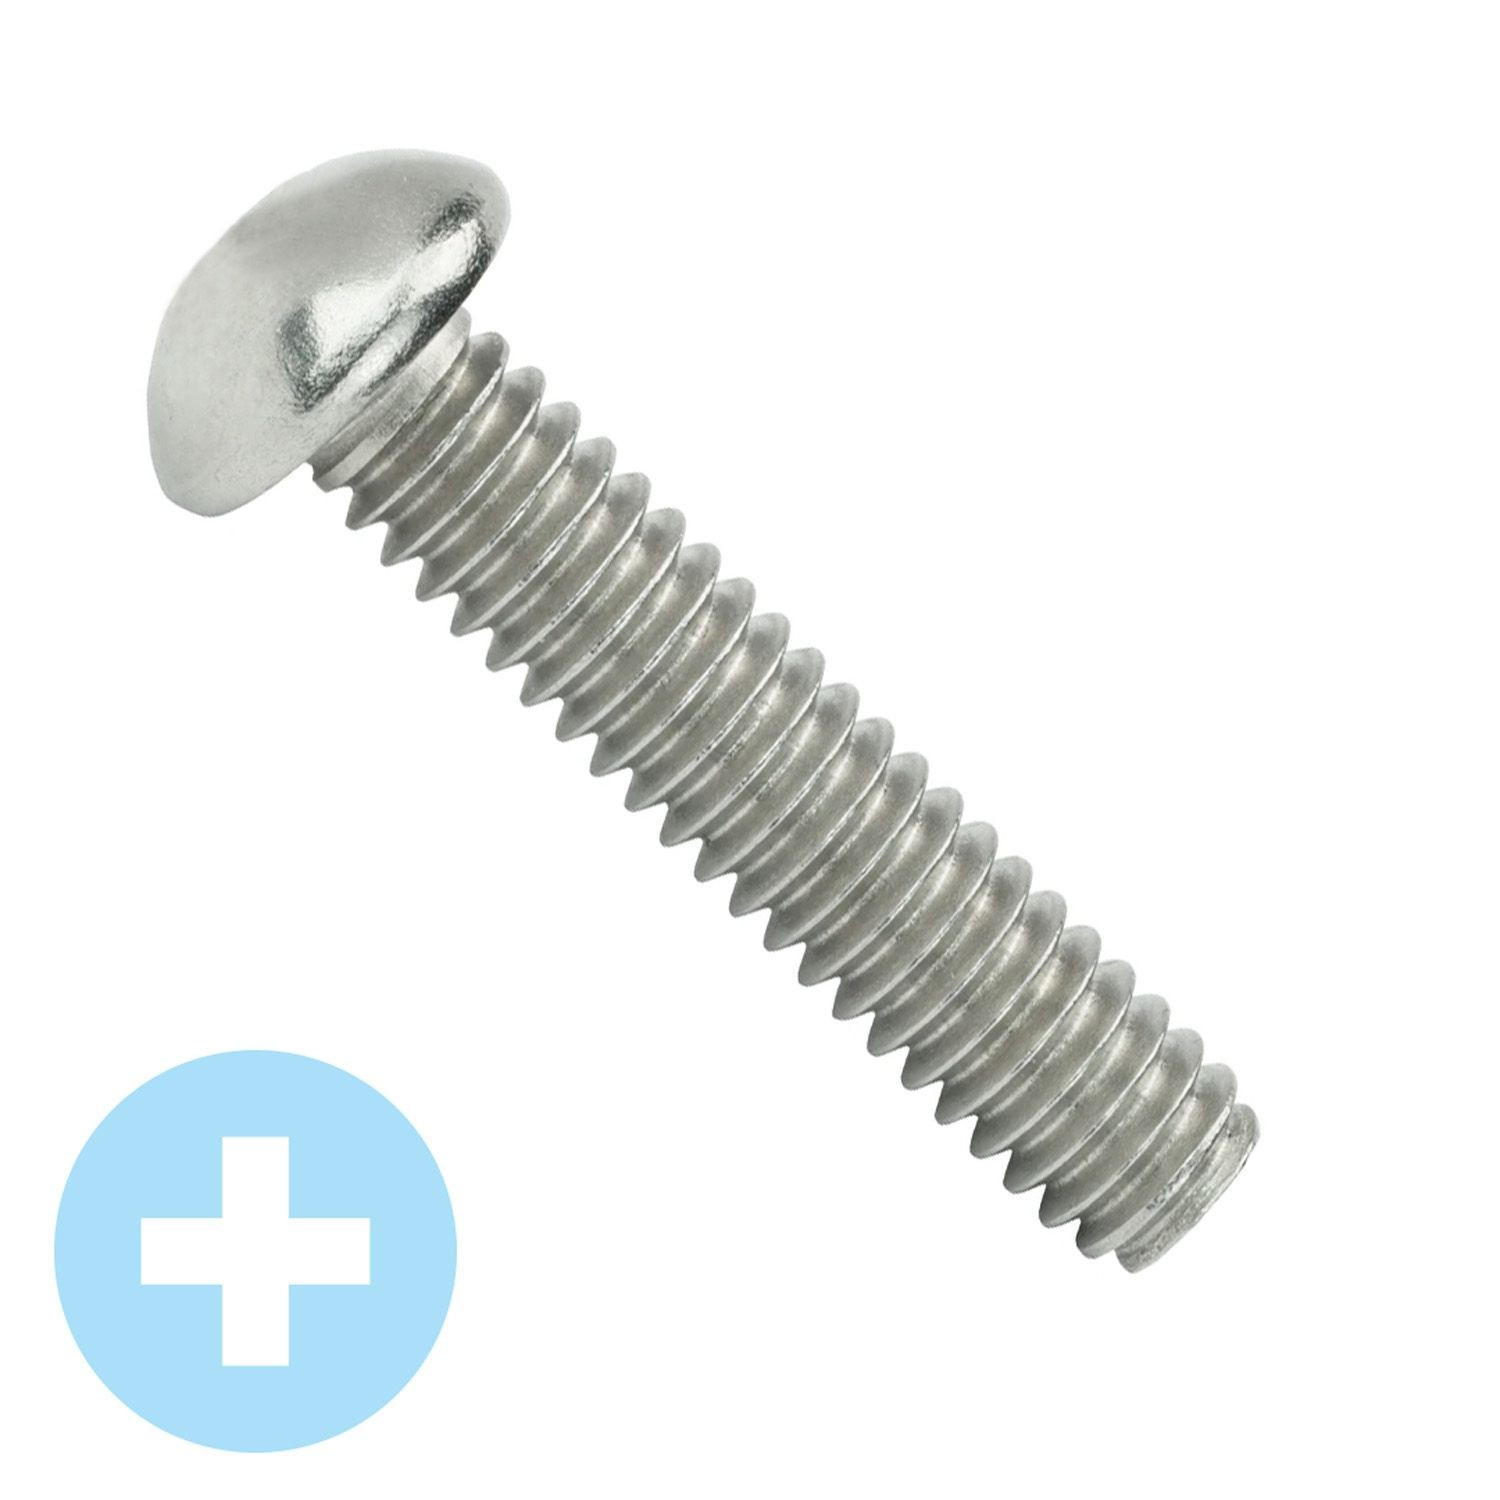 "#10-32 x 1"" Stainless Steel Phillips Round Head Machine Screw 18-8"